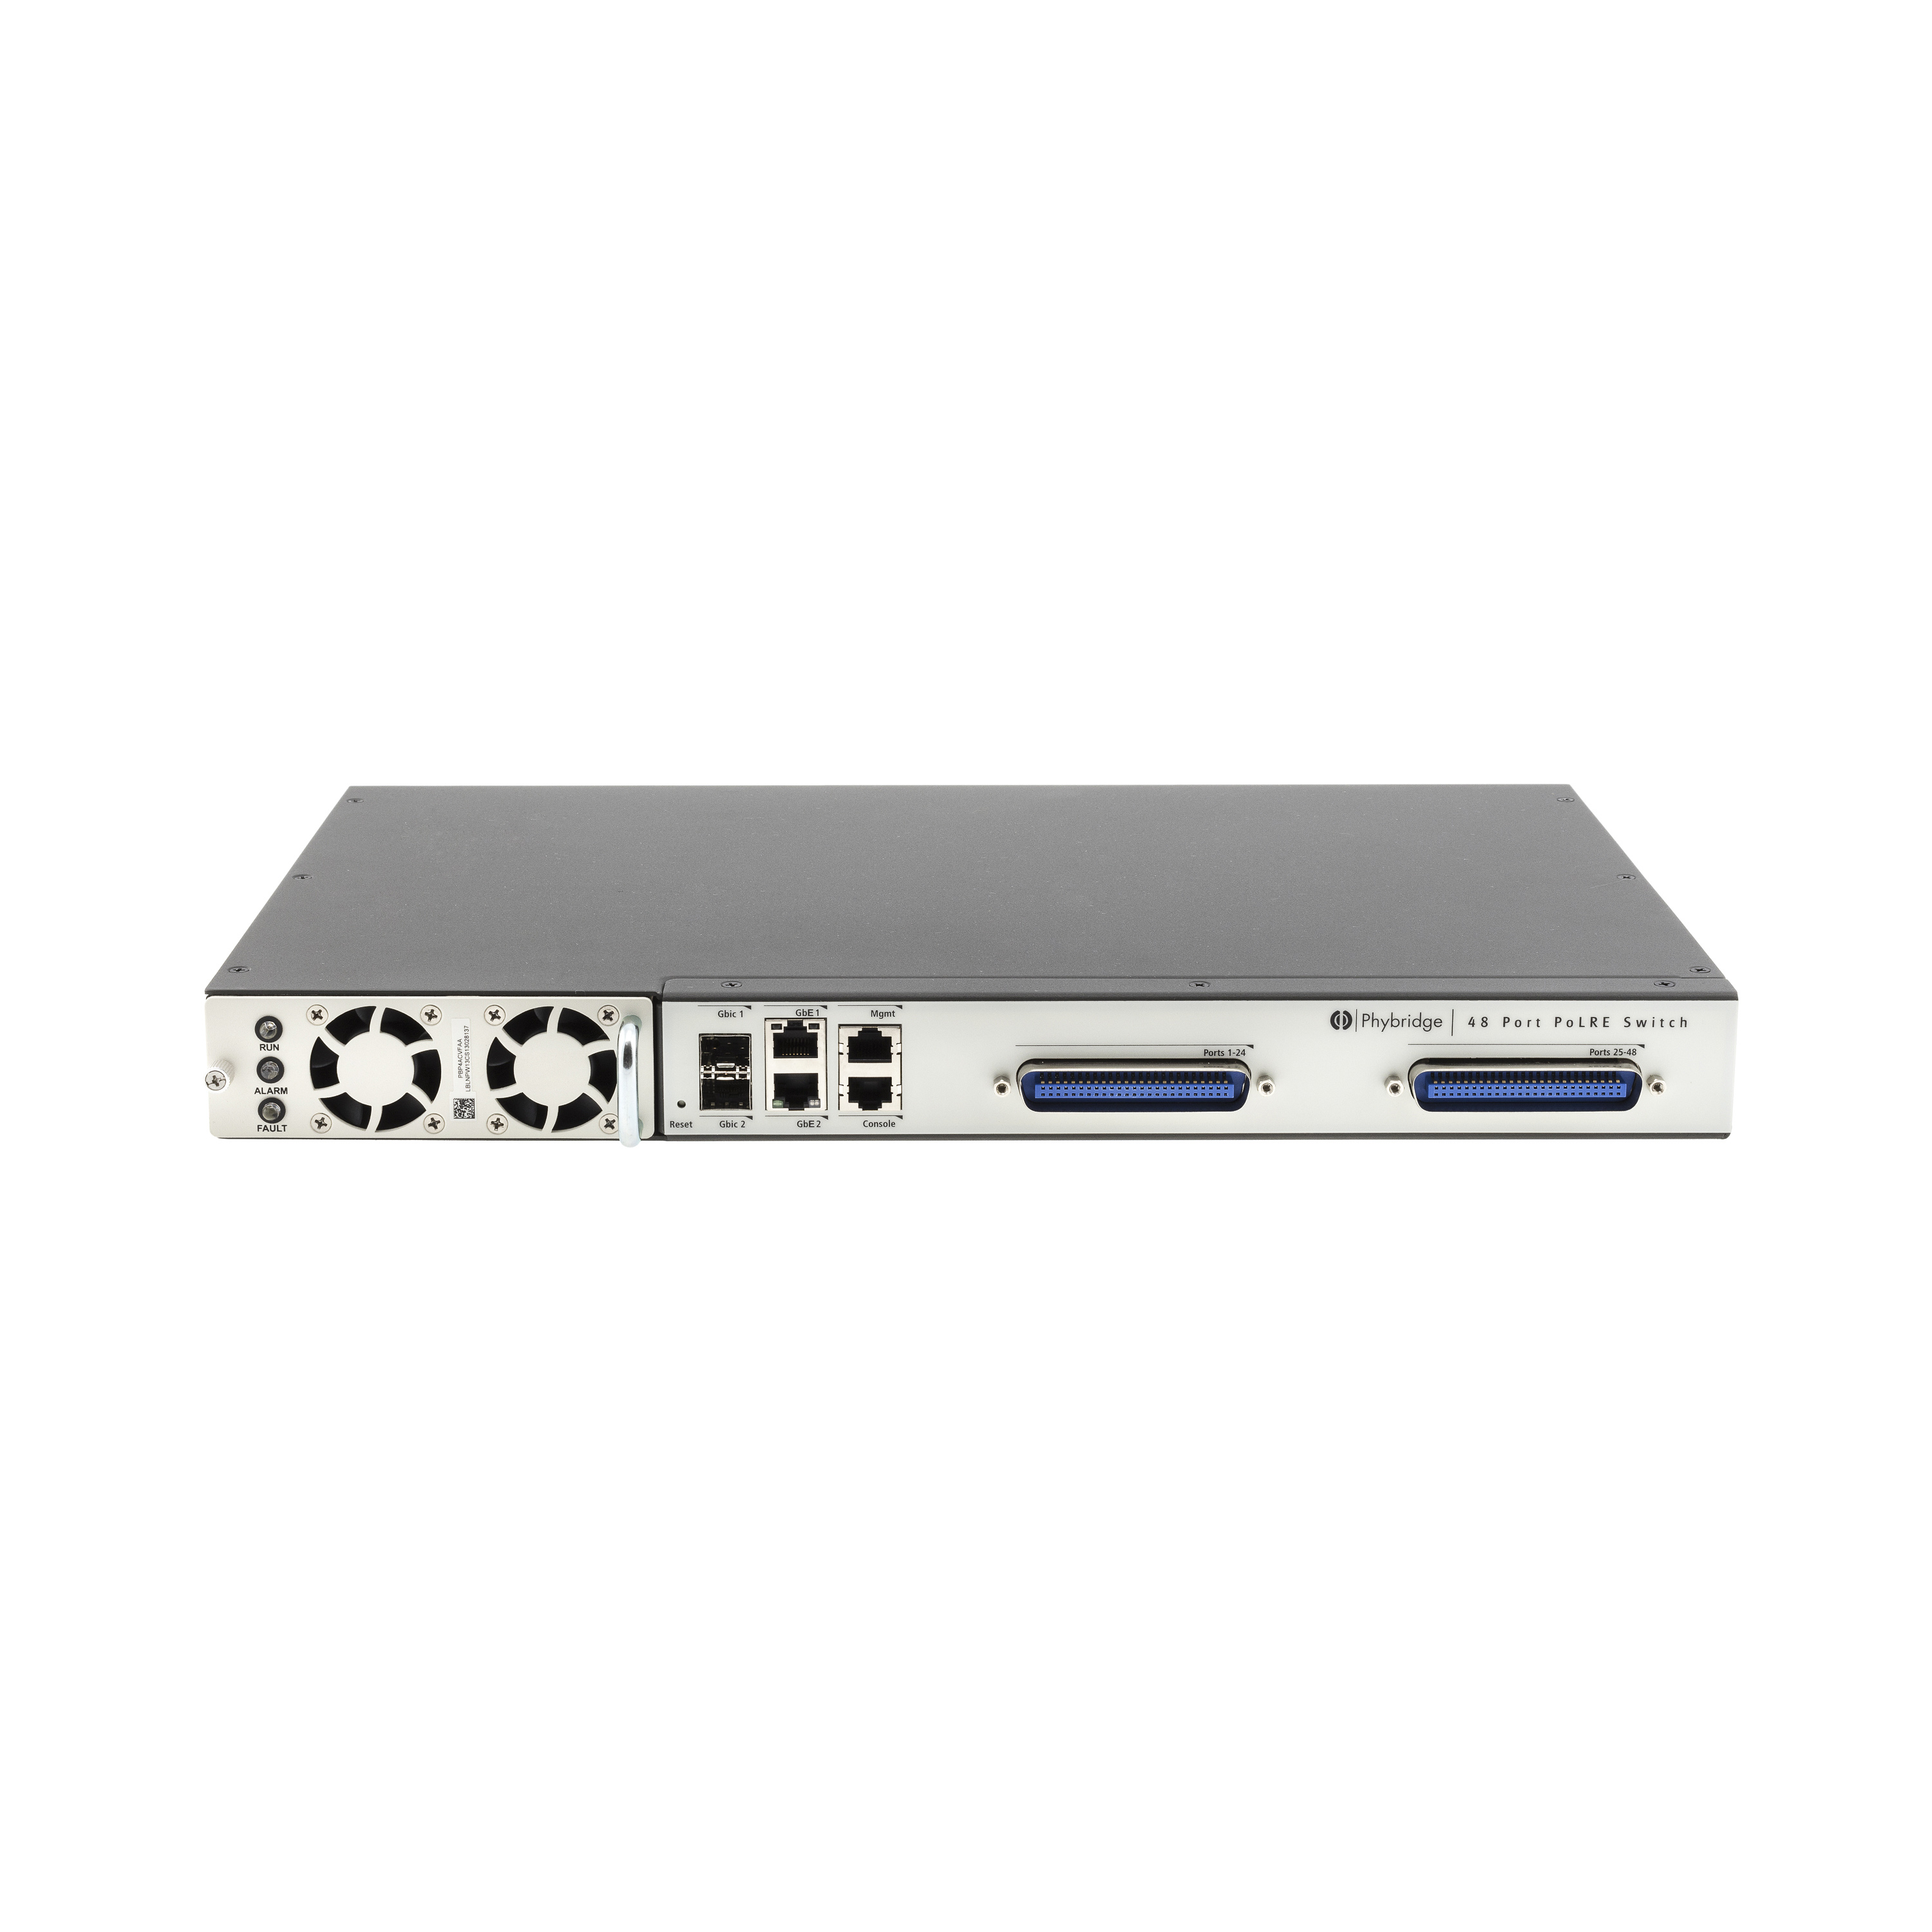 PoLRE48 Managed Switch